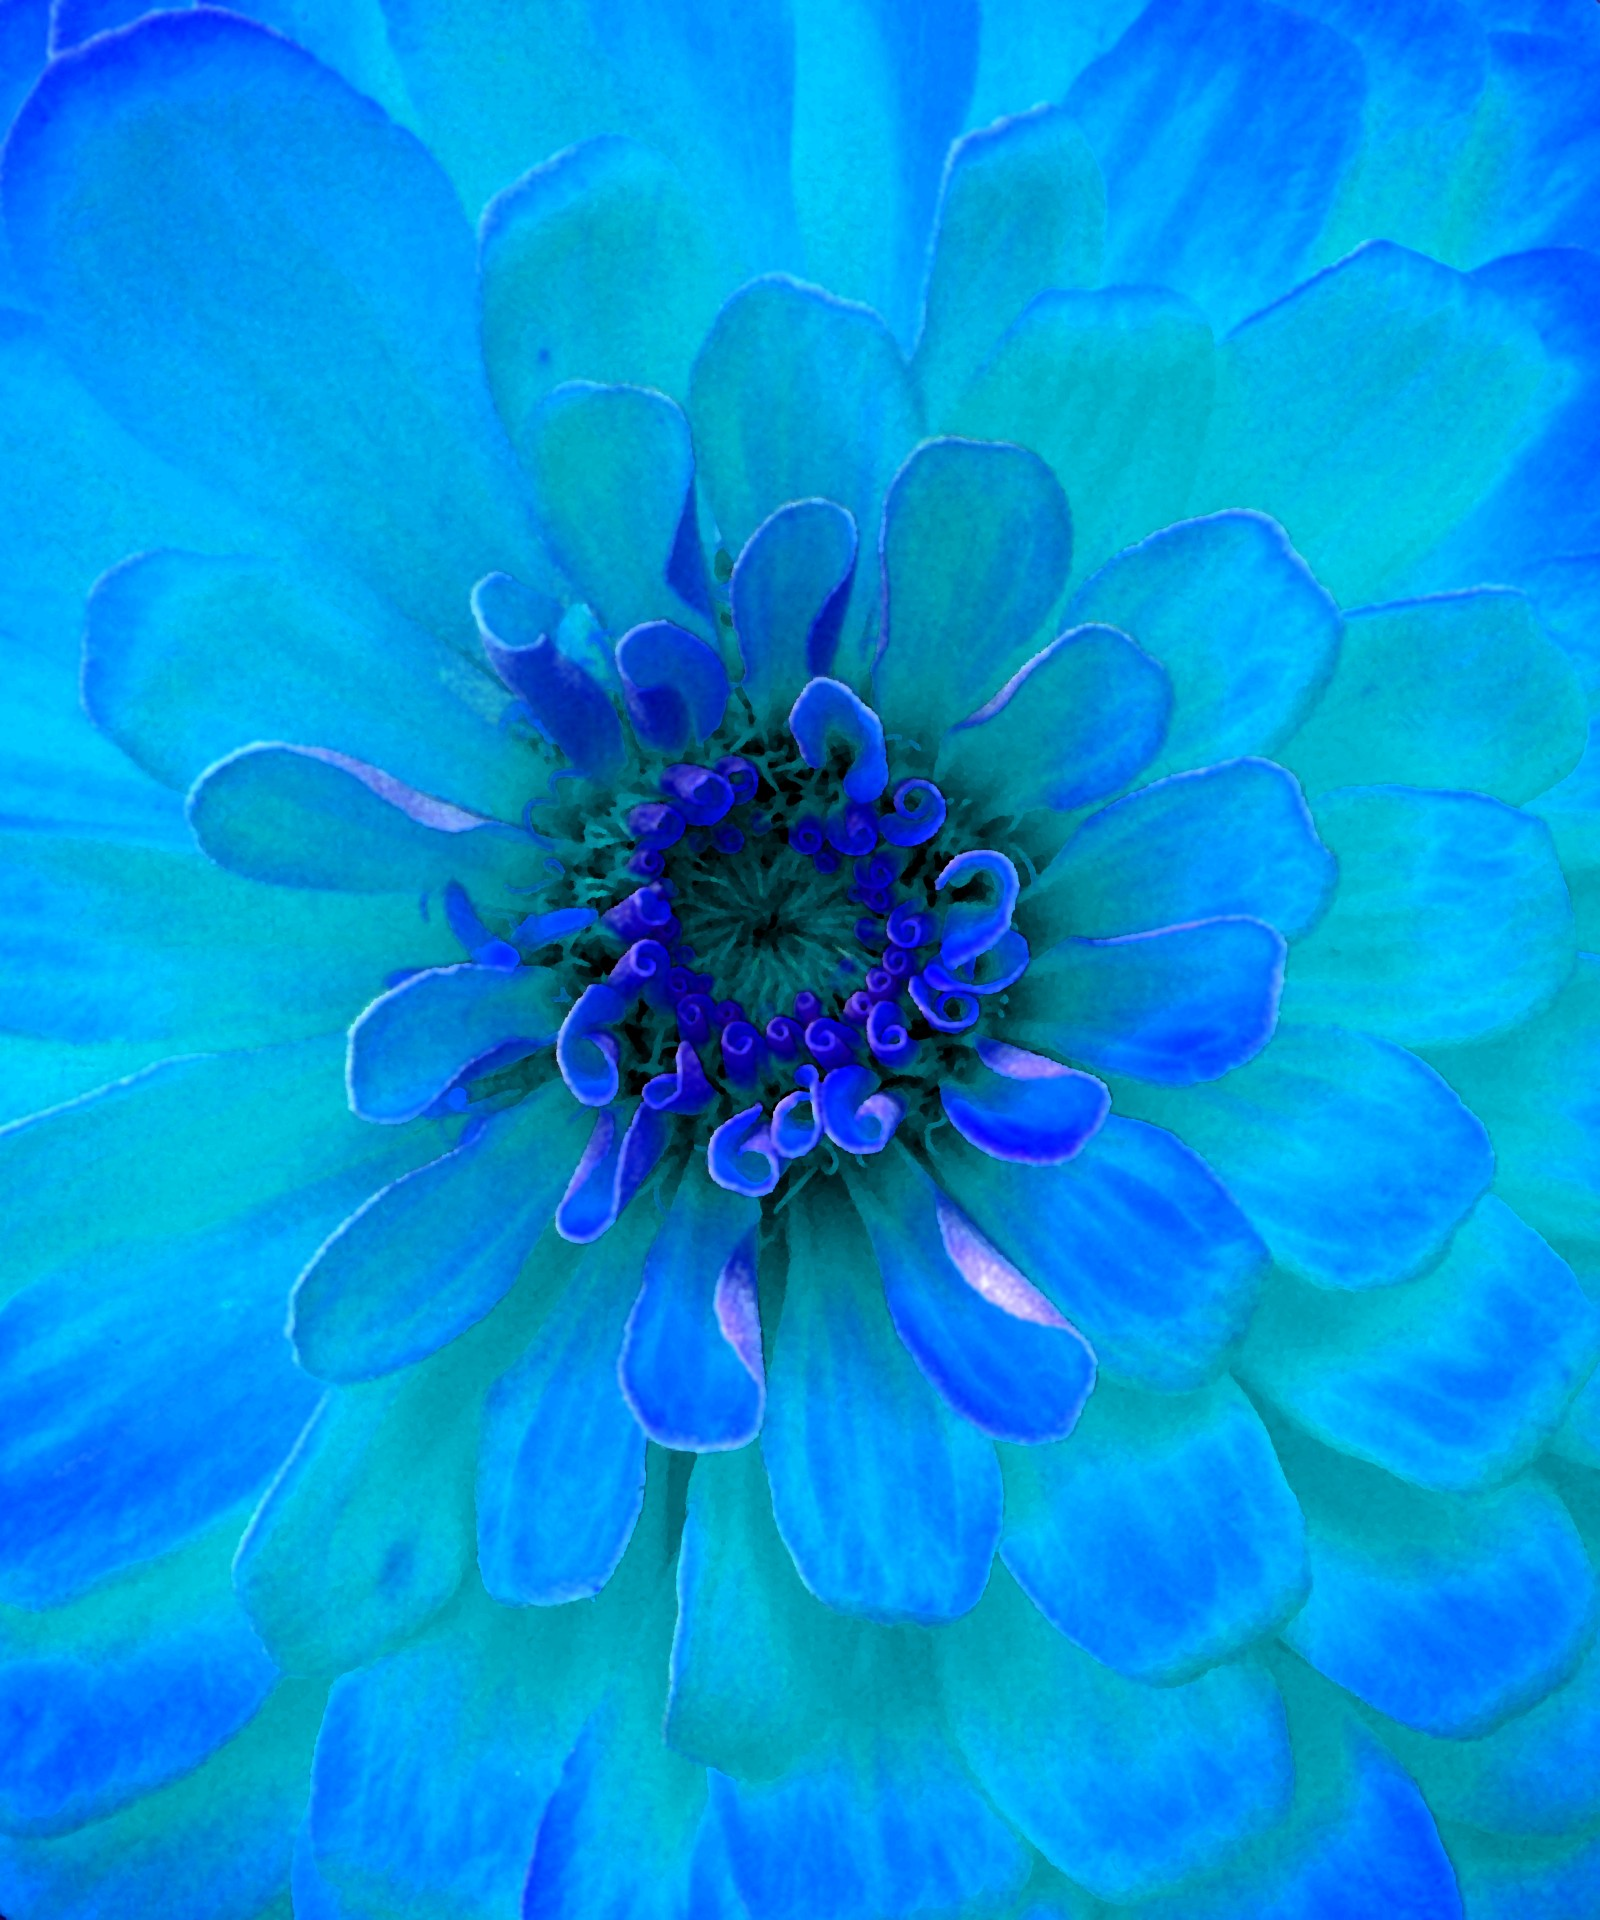 Painting Of A Turquoise Flower Free Stock Photo   Public Domain Pictures Painting Of A Turquoise Flower